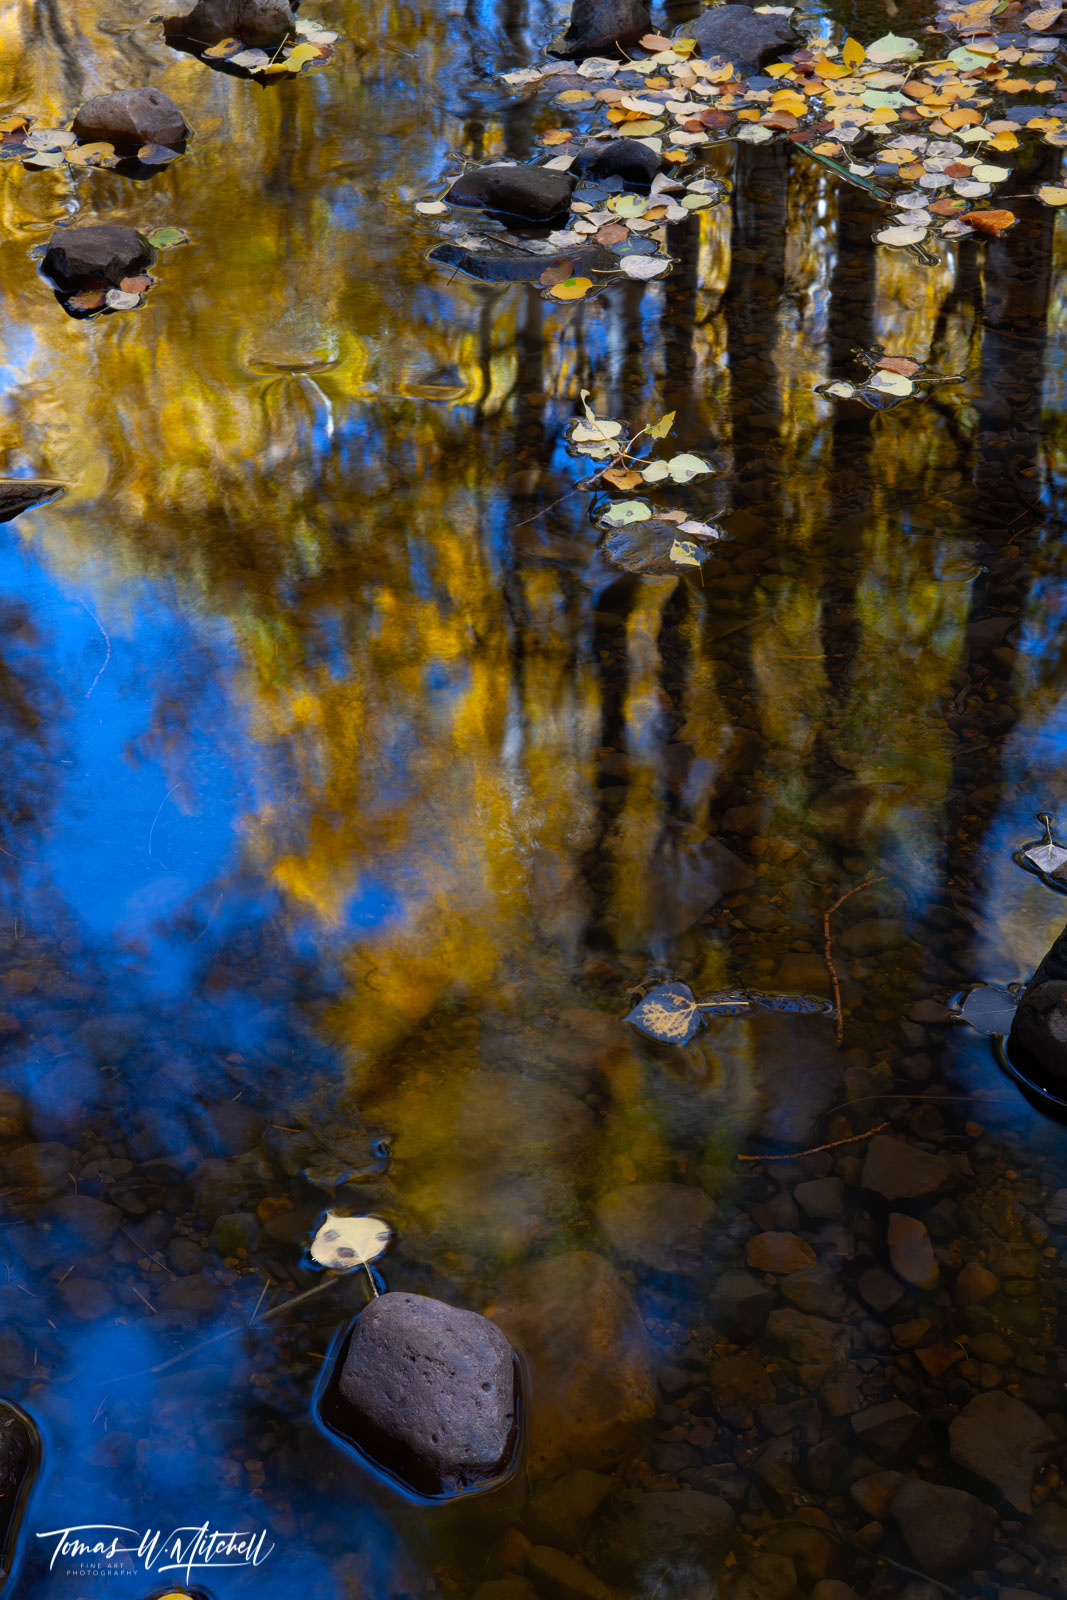 limited edition, fine art, prints, photograph, oakley utah, autumn, water, rock, trees, abstract, photo